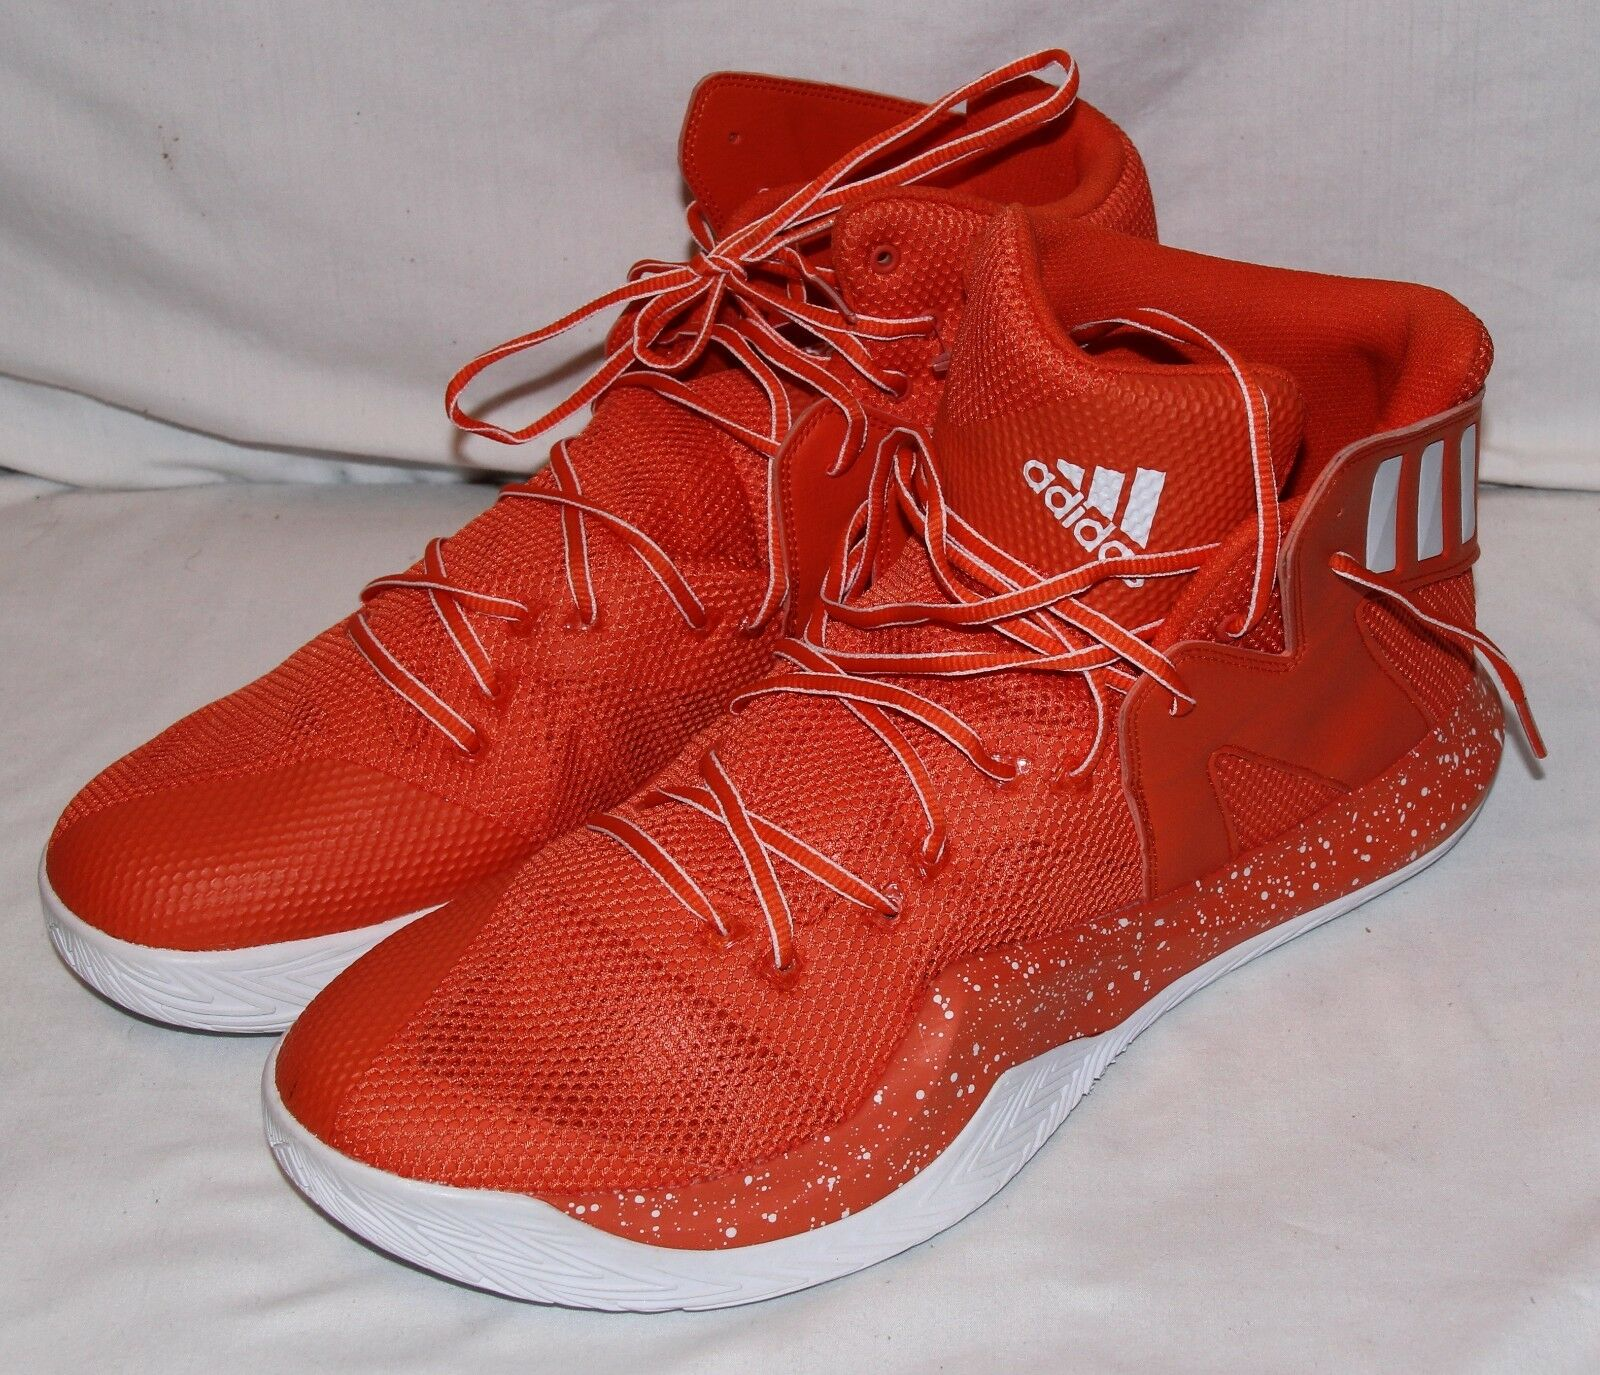 Adidas New Mens orange White Basketball shoes Sneakers Athletic 16